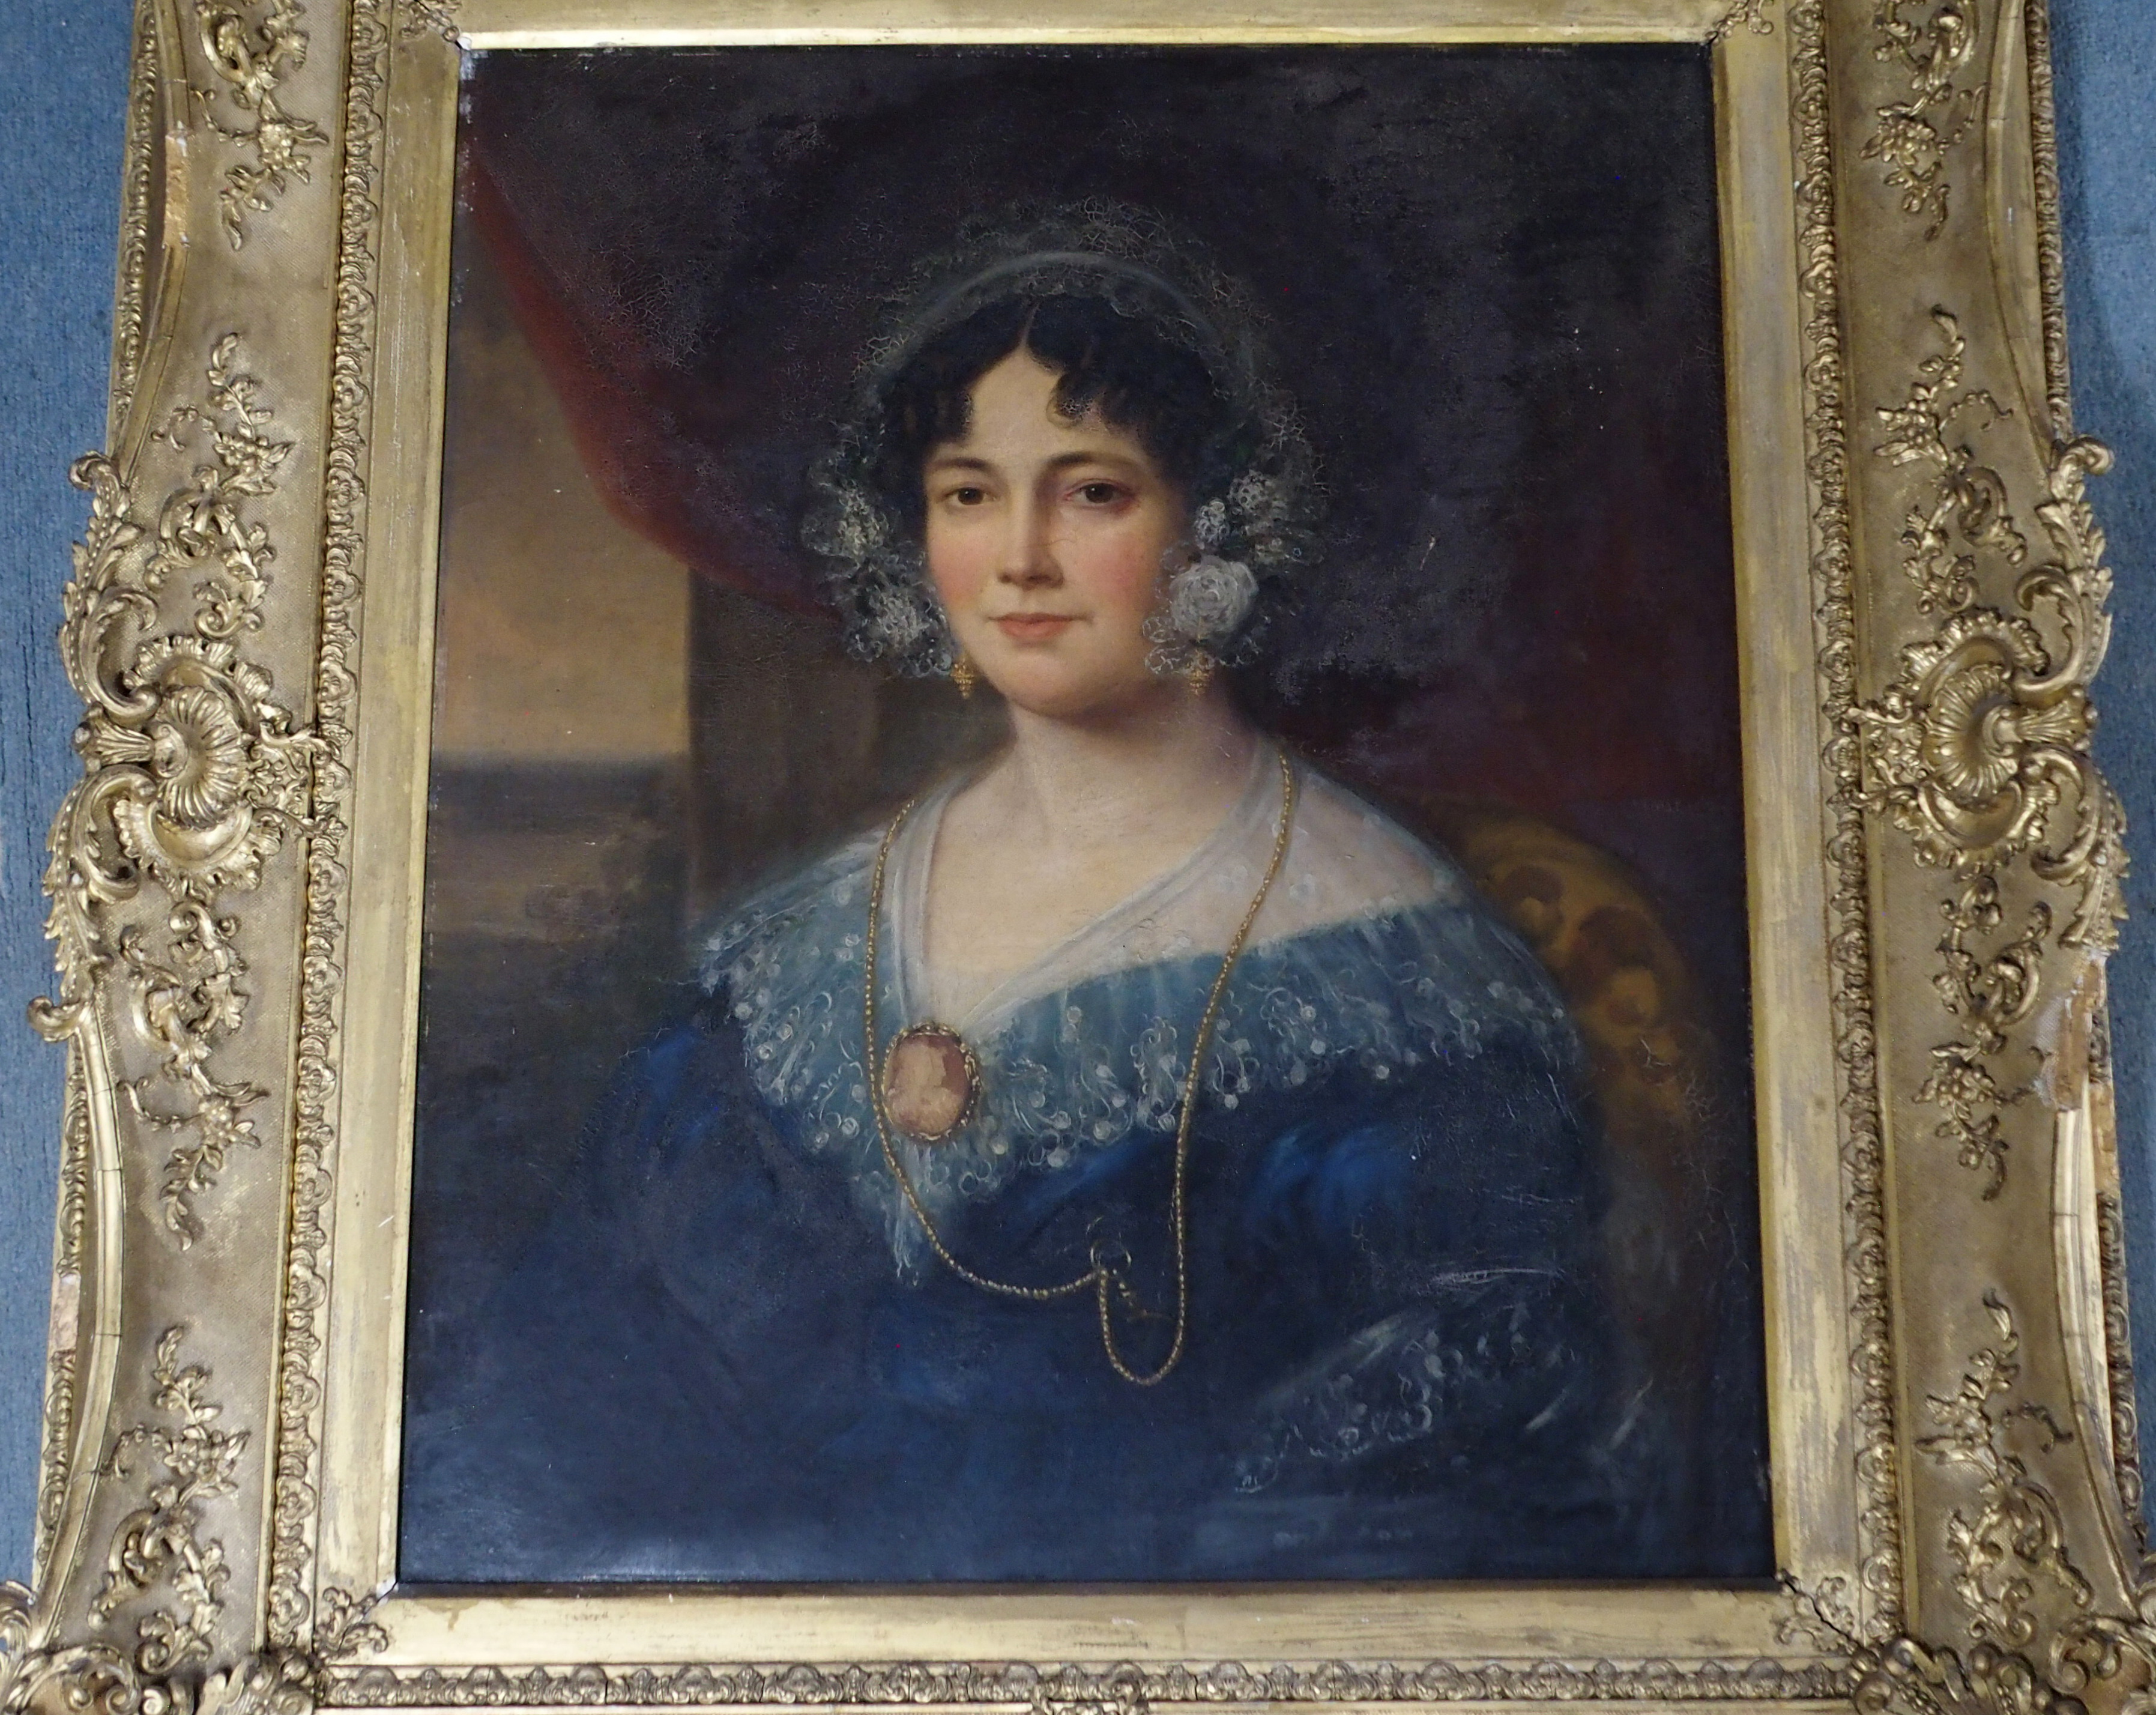 BRITISH SCHOOL (19TH CENTURY) PORTRAIT OF A LADY IN A BLUE DRESS AND LACE CAP Oil on canvas, 76 x - Image 3 of 5